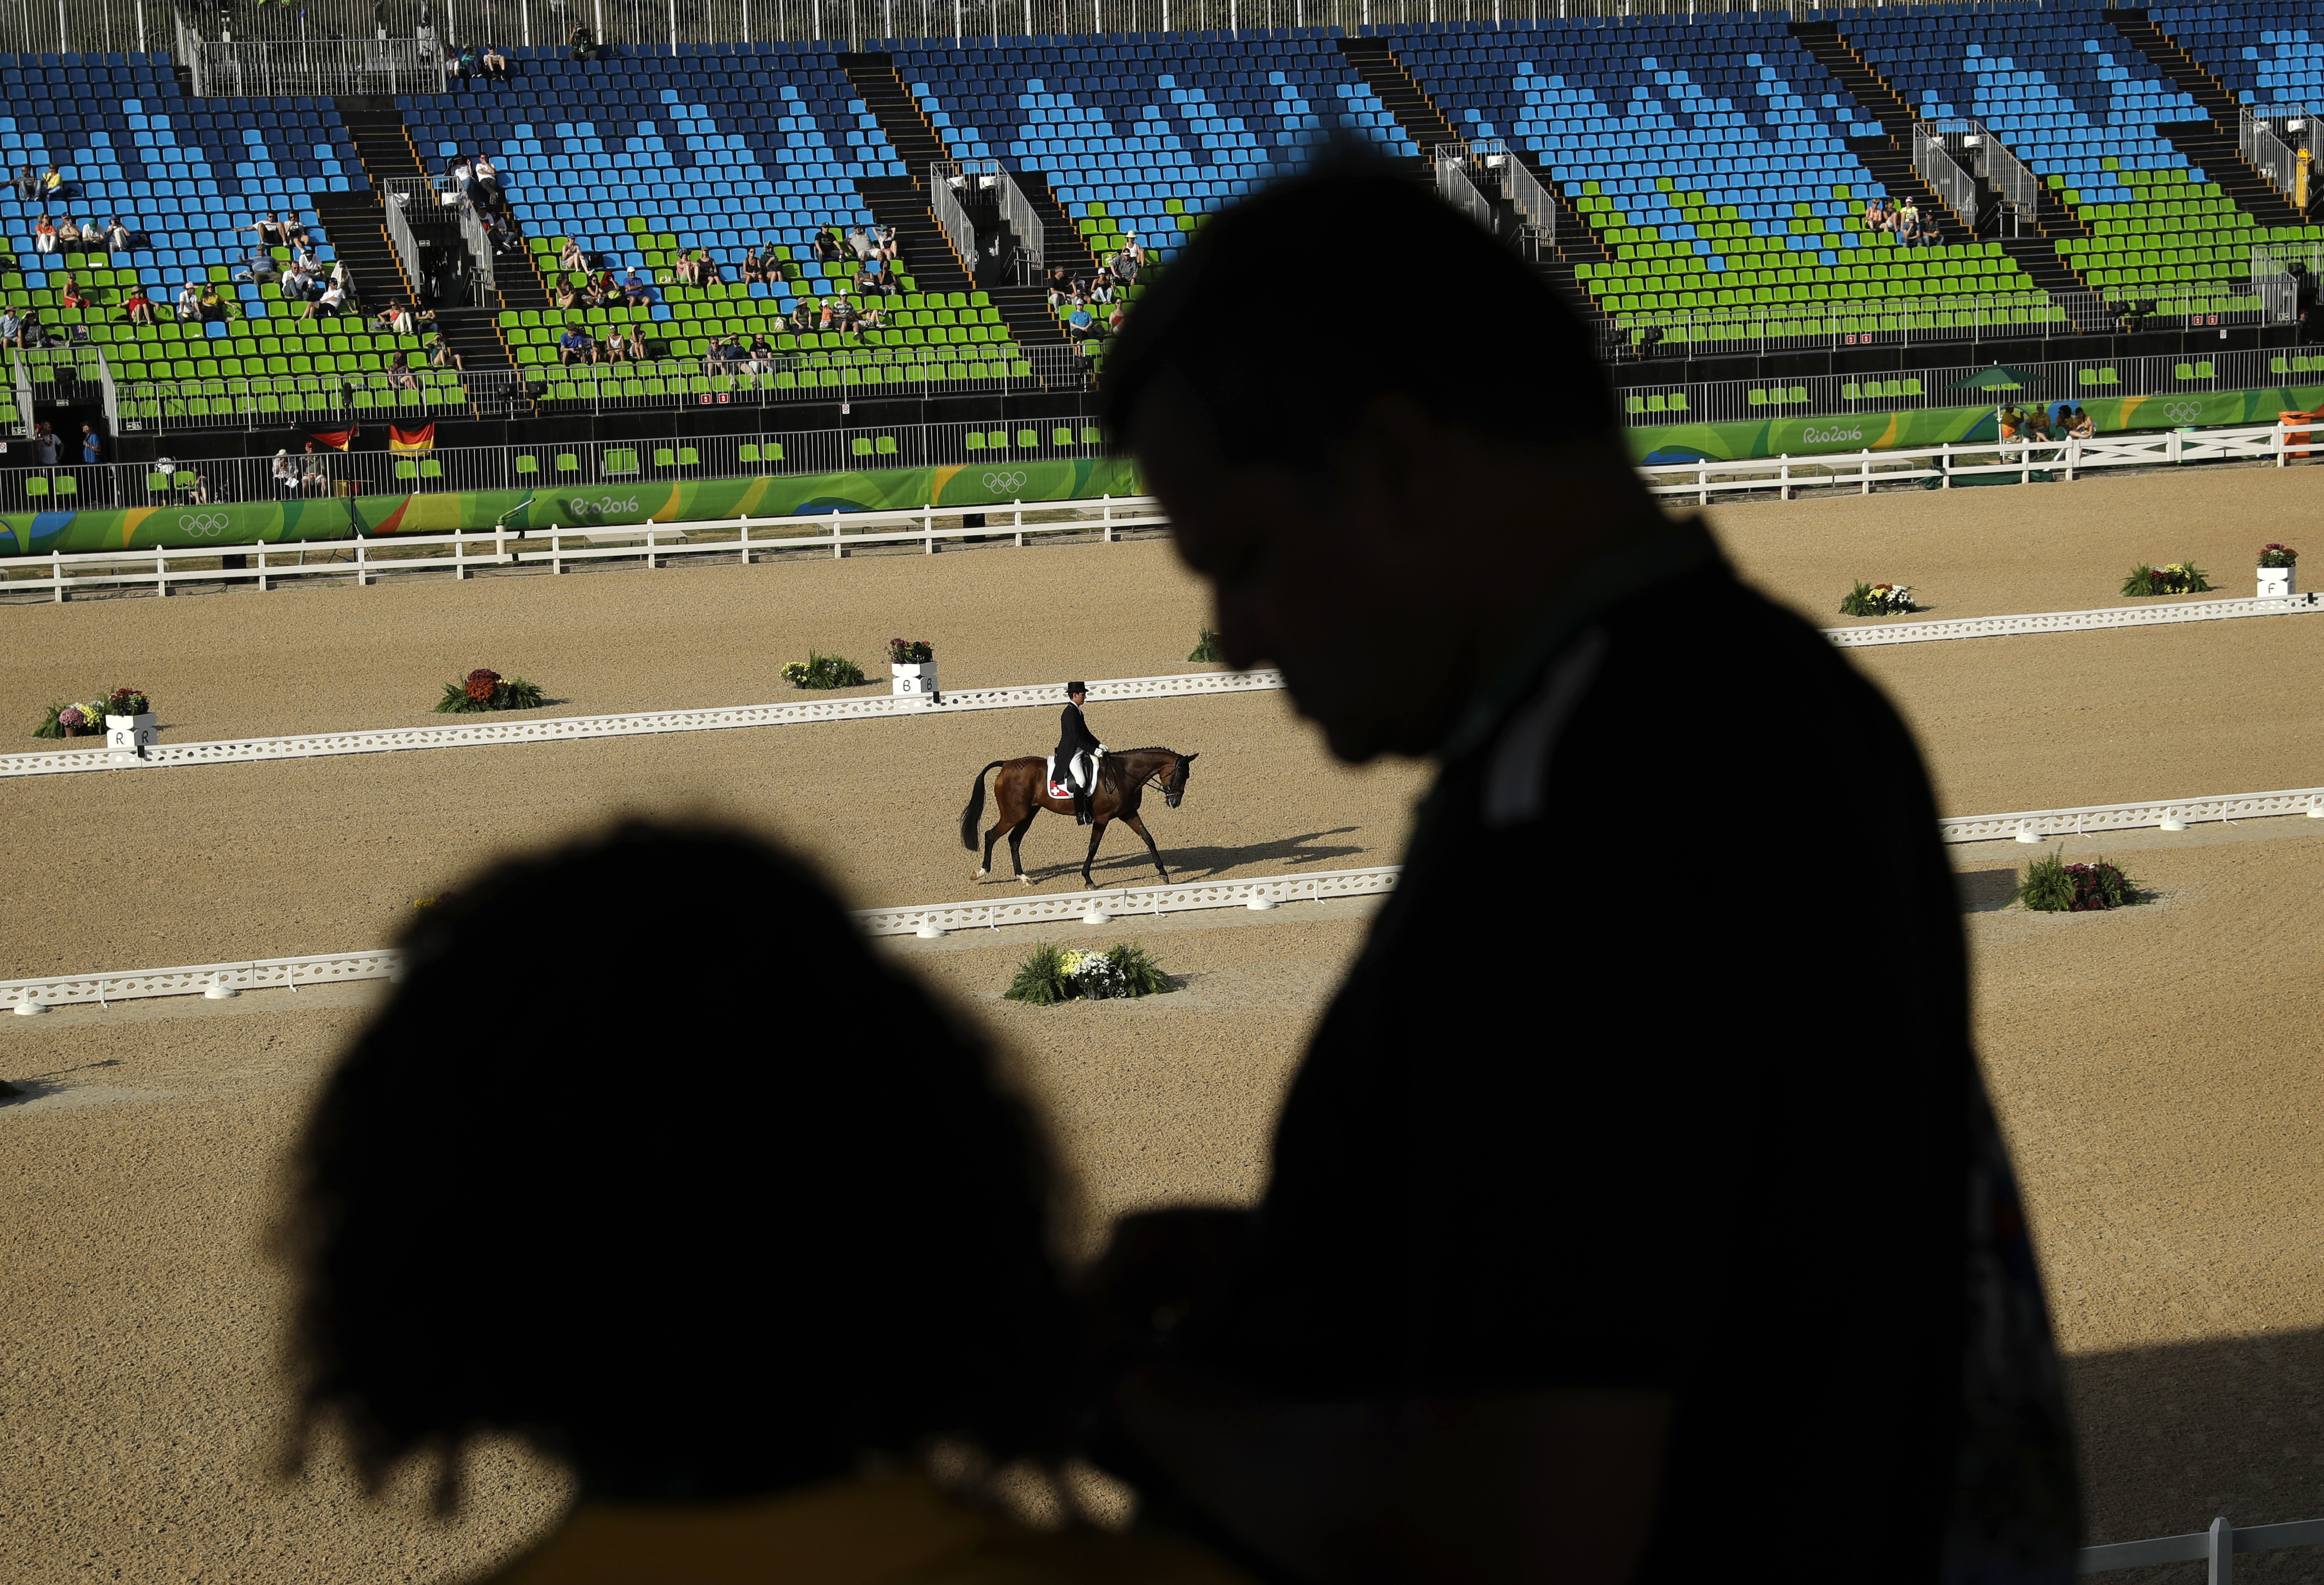 Felix Vogg, of Switzerland, rides Onfire in the equestrian eventing dressage competition at the 2016 Summer Olympics in Rio de Janeiro, Brazil, Saturday, Aug. 6, 2016. (AP Photo/John Locher)